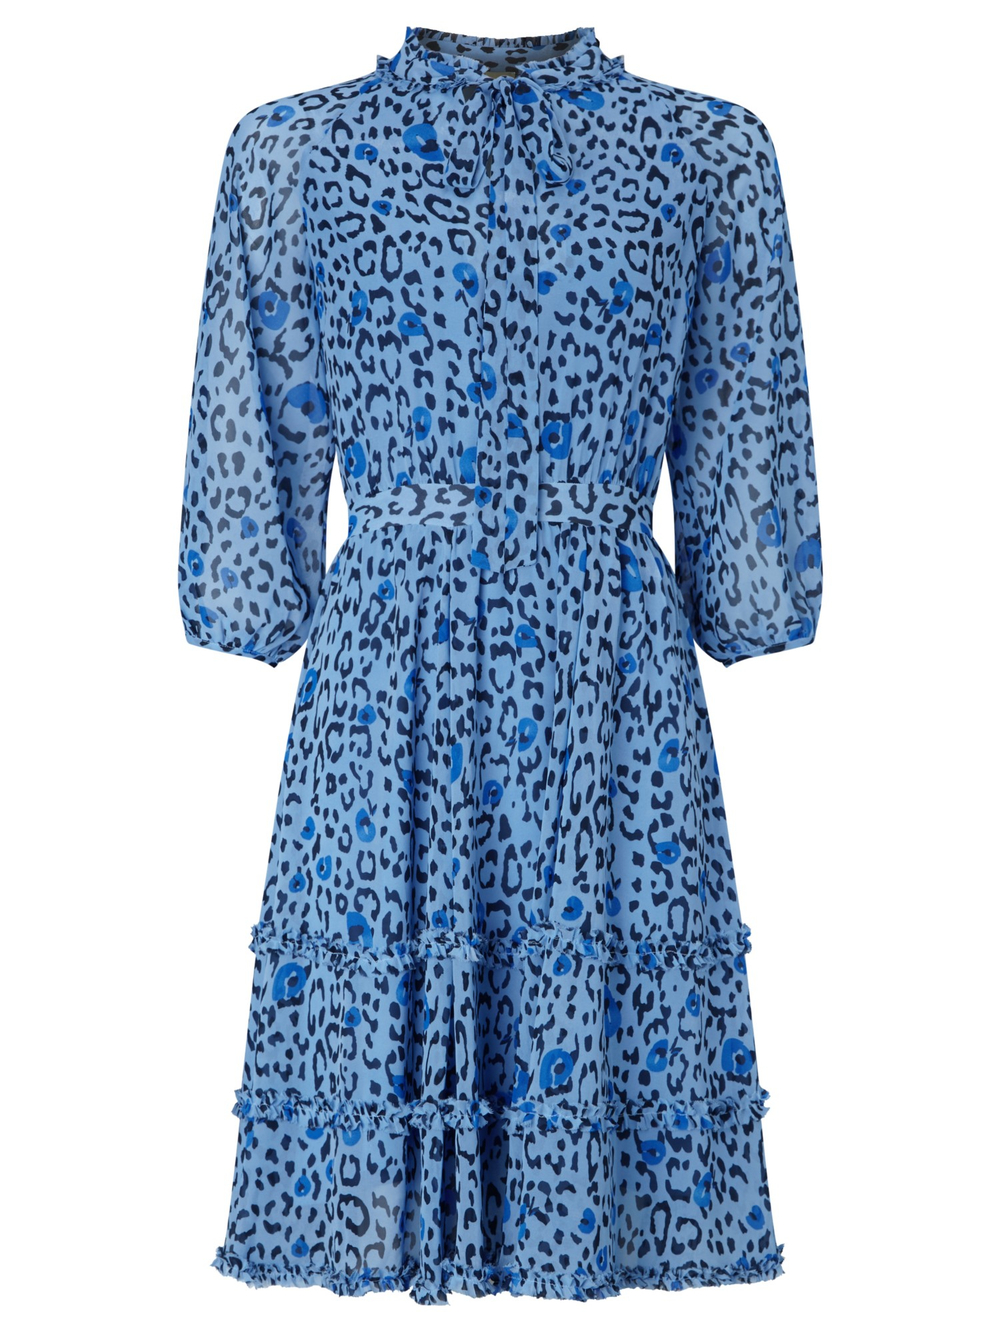 somerset-by-alice-temperley-blue-leopard-print-dress-product-3-304992144-normal.jpeg